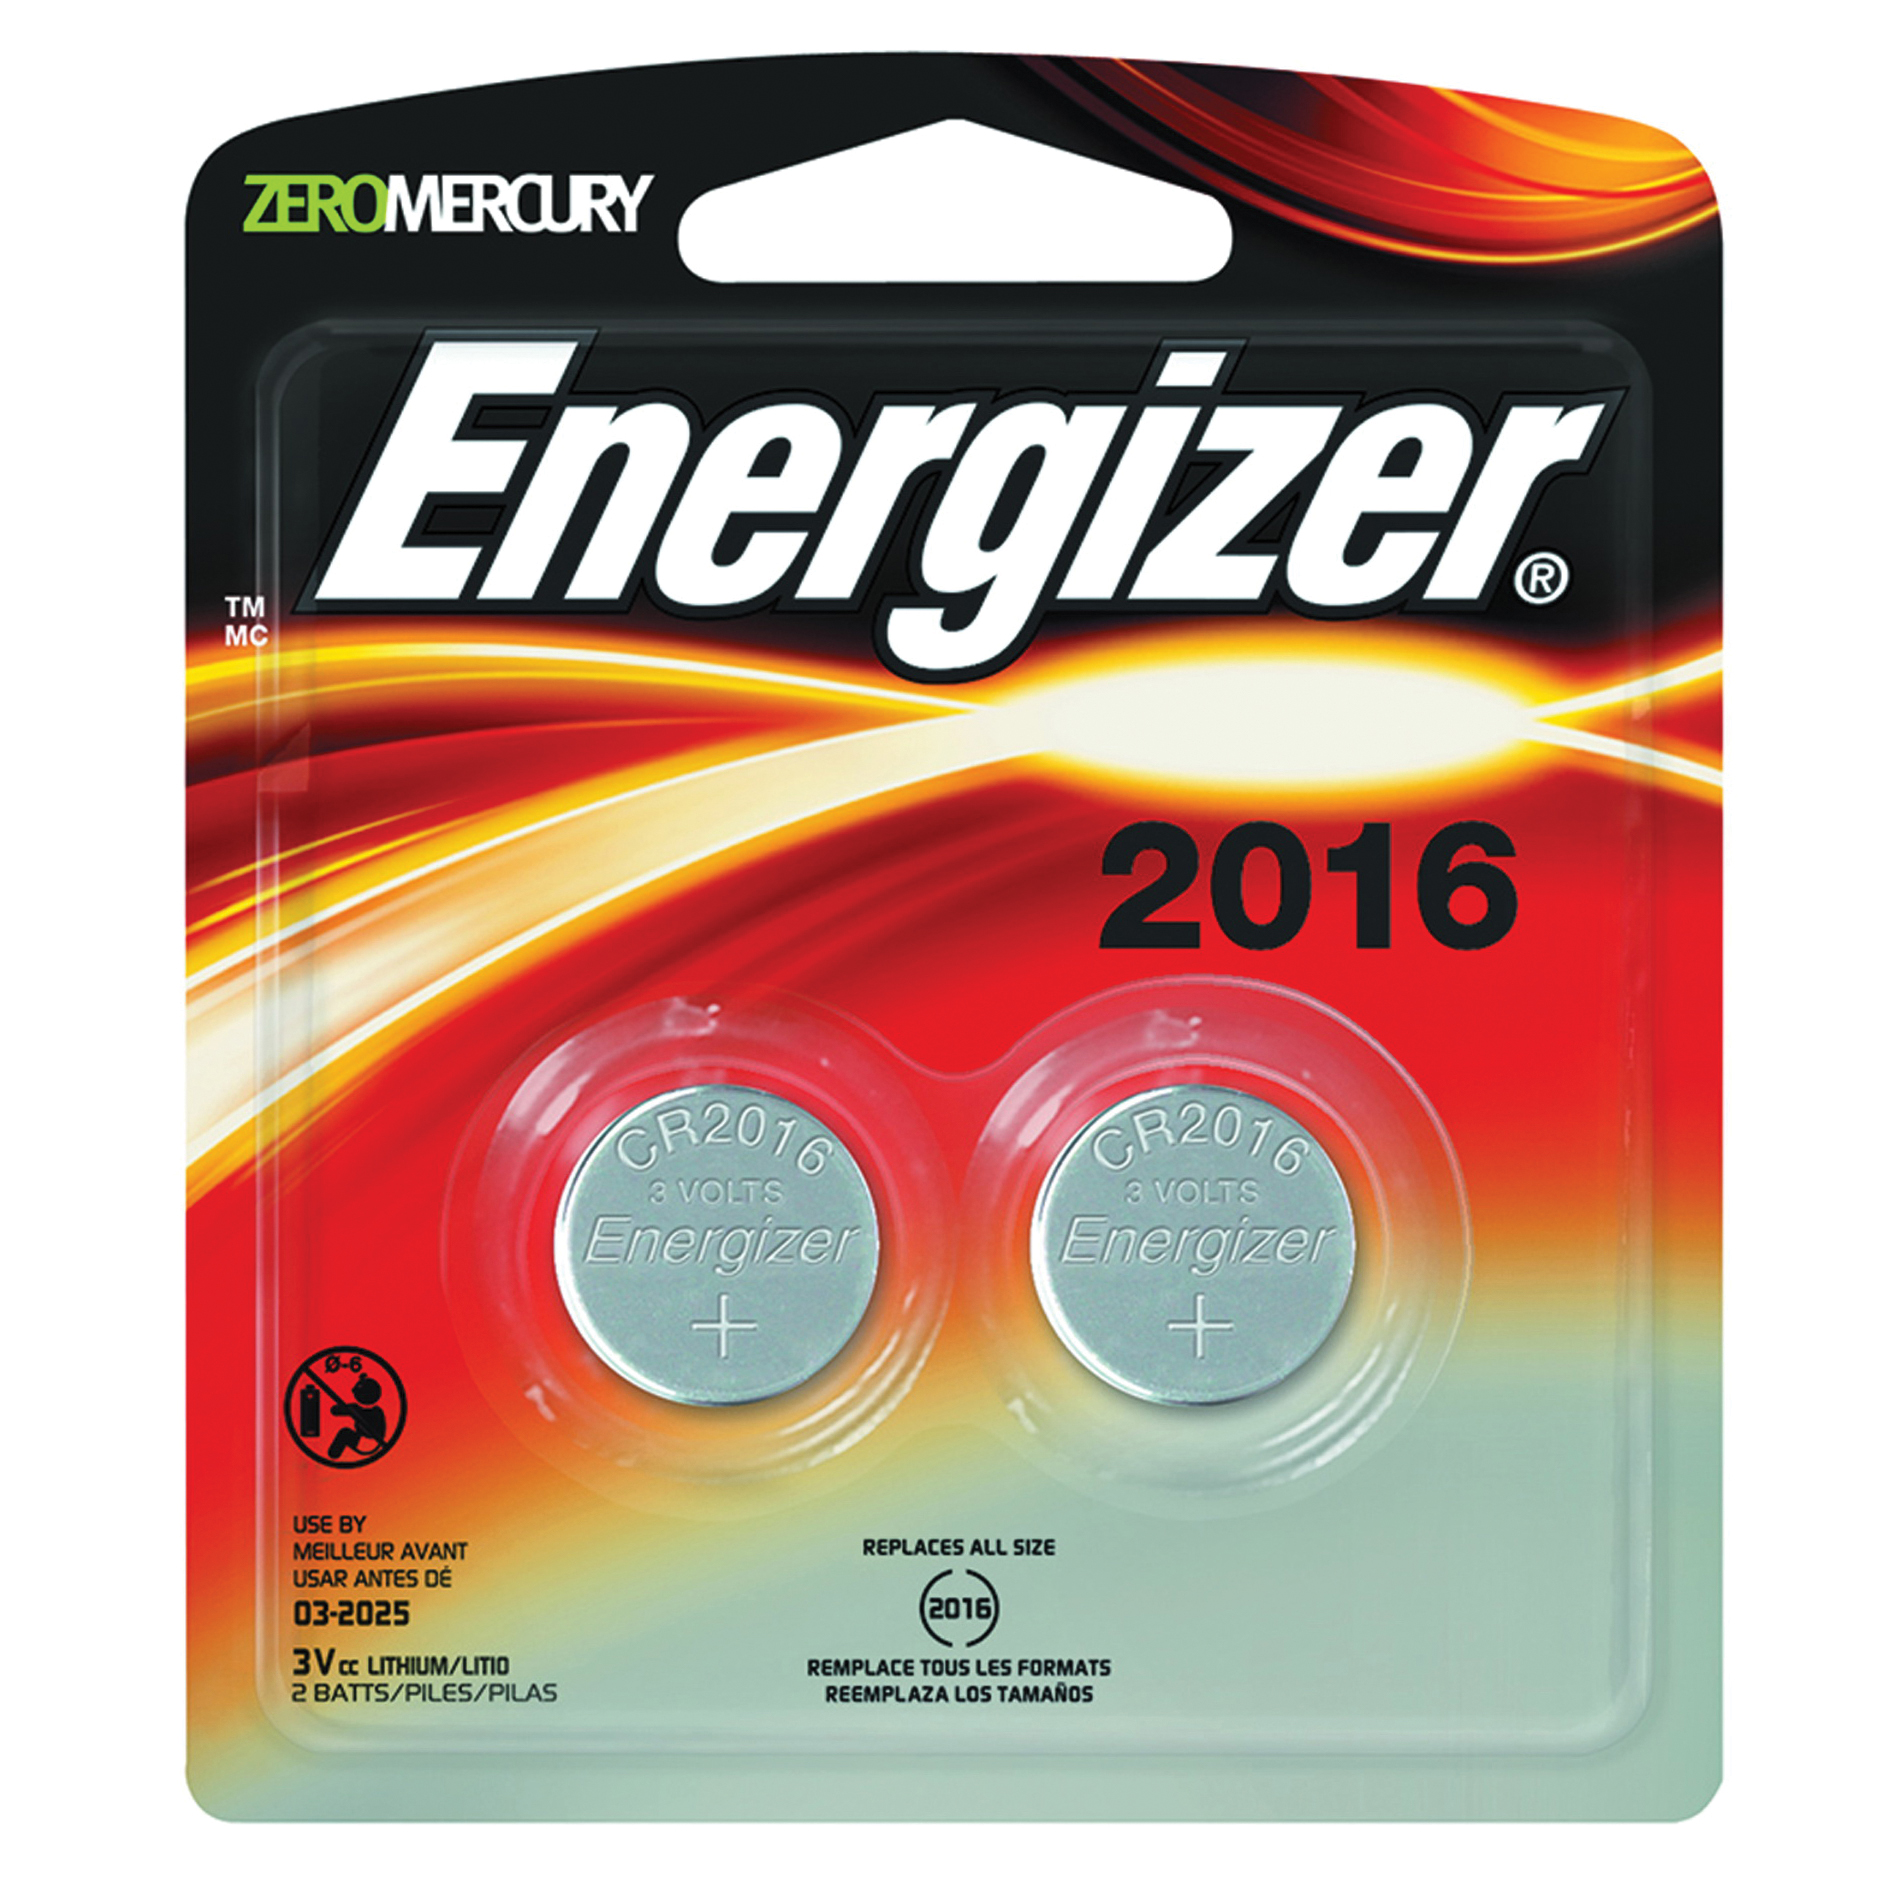 Picture of Energizer 2016BP-2 Coin Cell Battery, 3 V Battery, 100 mAh, CR2016 Battery, Lithium, Manganese Dioxide